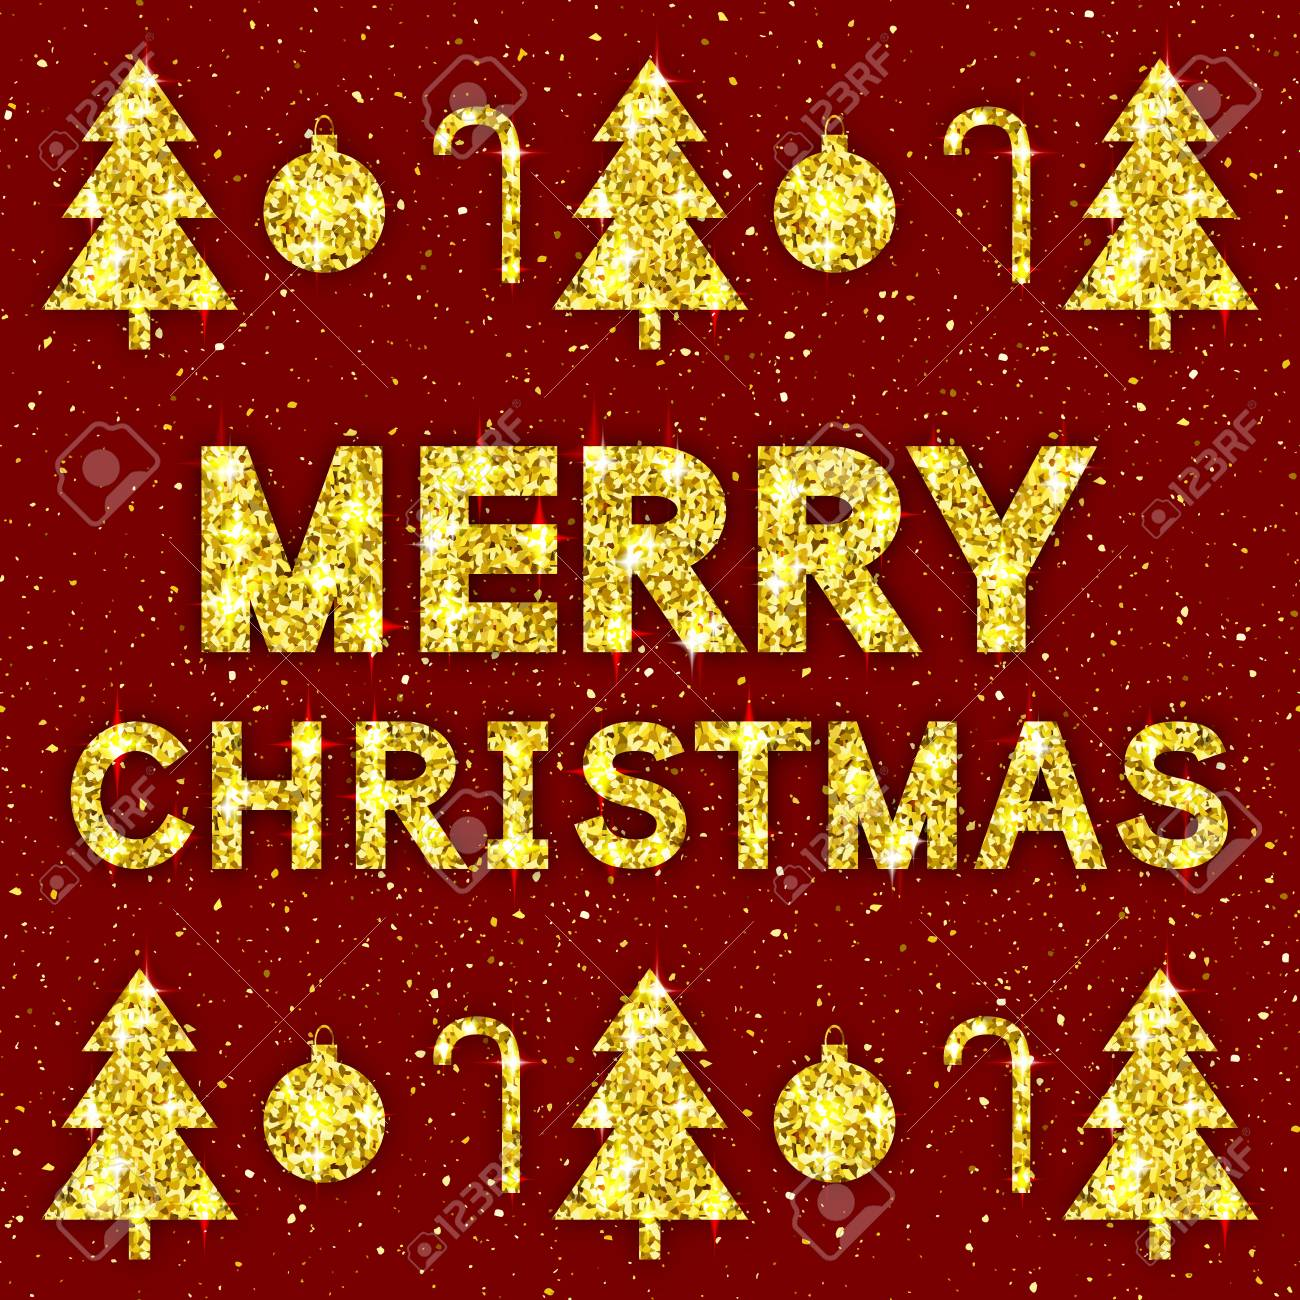 Merry Christmas Golden Text Glittering Xmas Greeting Card With